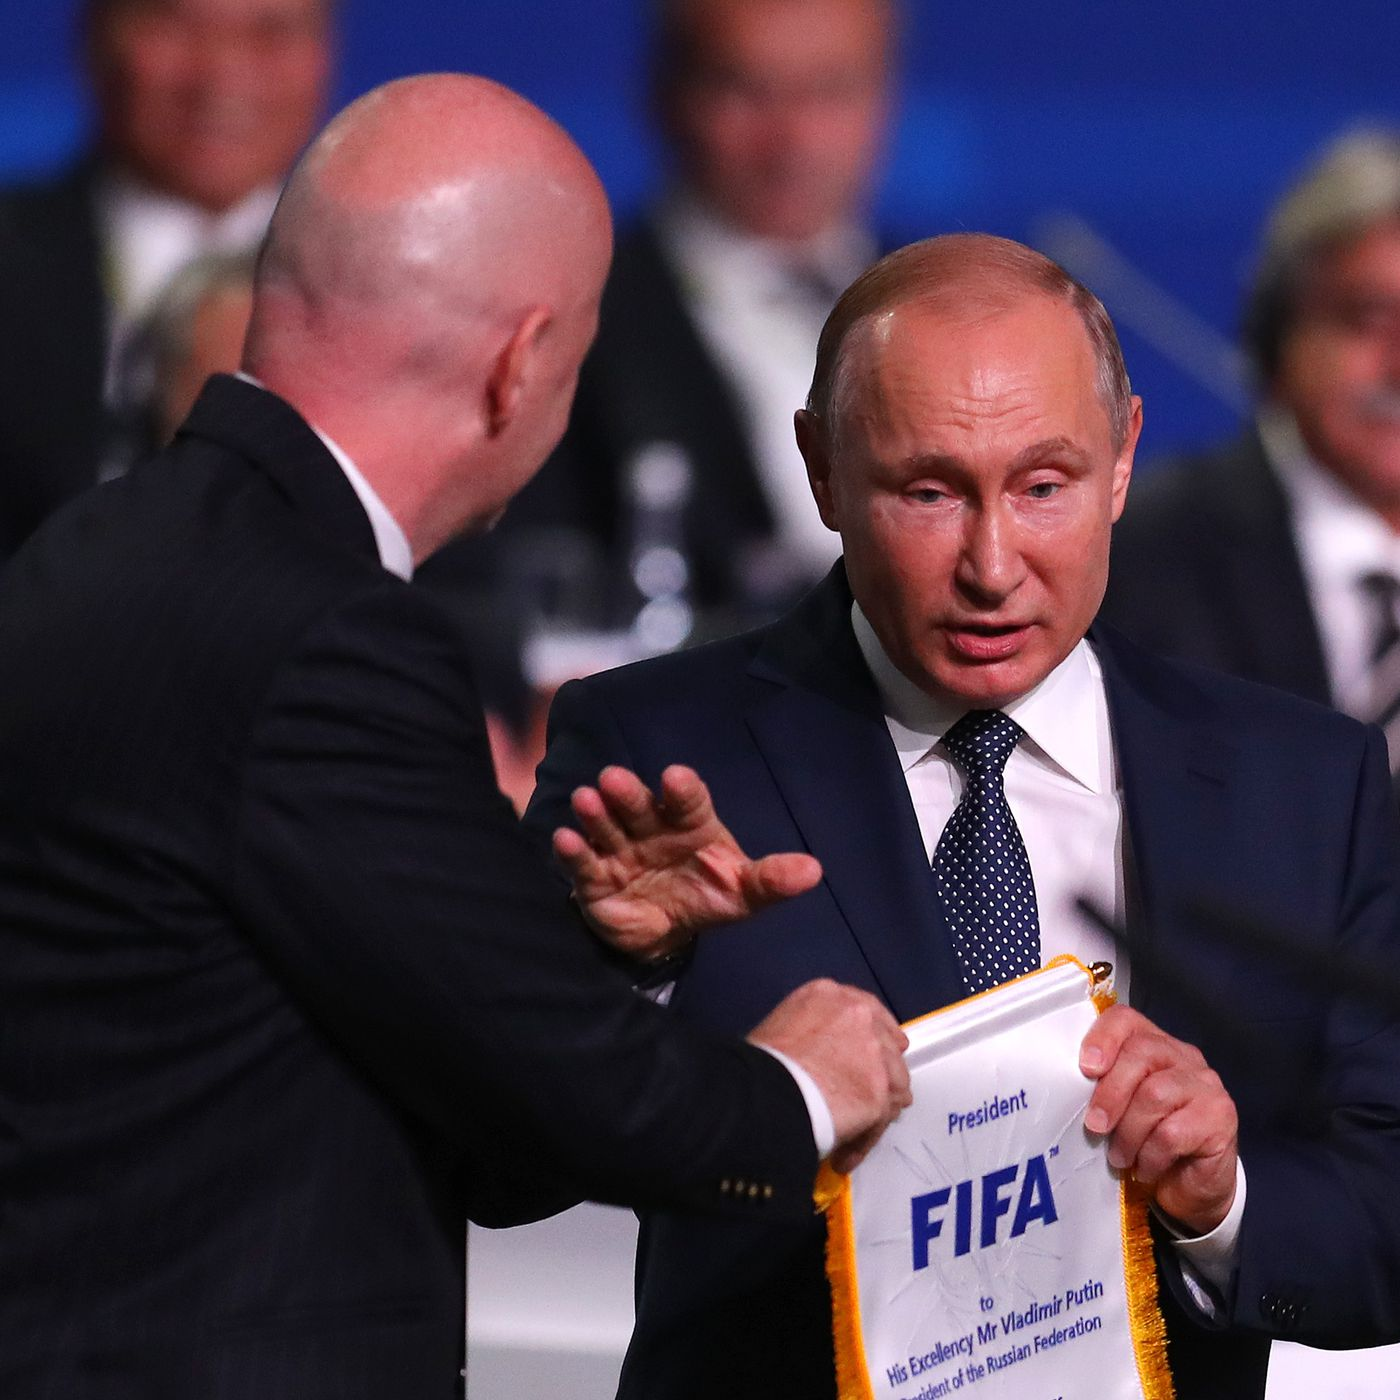 Vladimir Putin S Handshake Showed Politics Can T Escape World Cup Sbnation Com